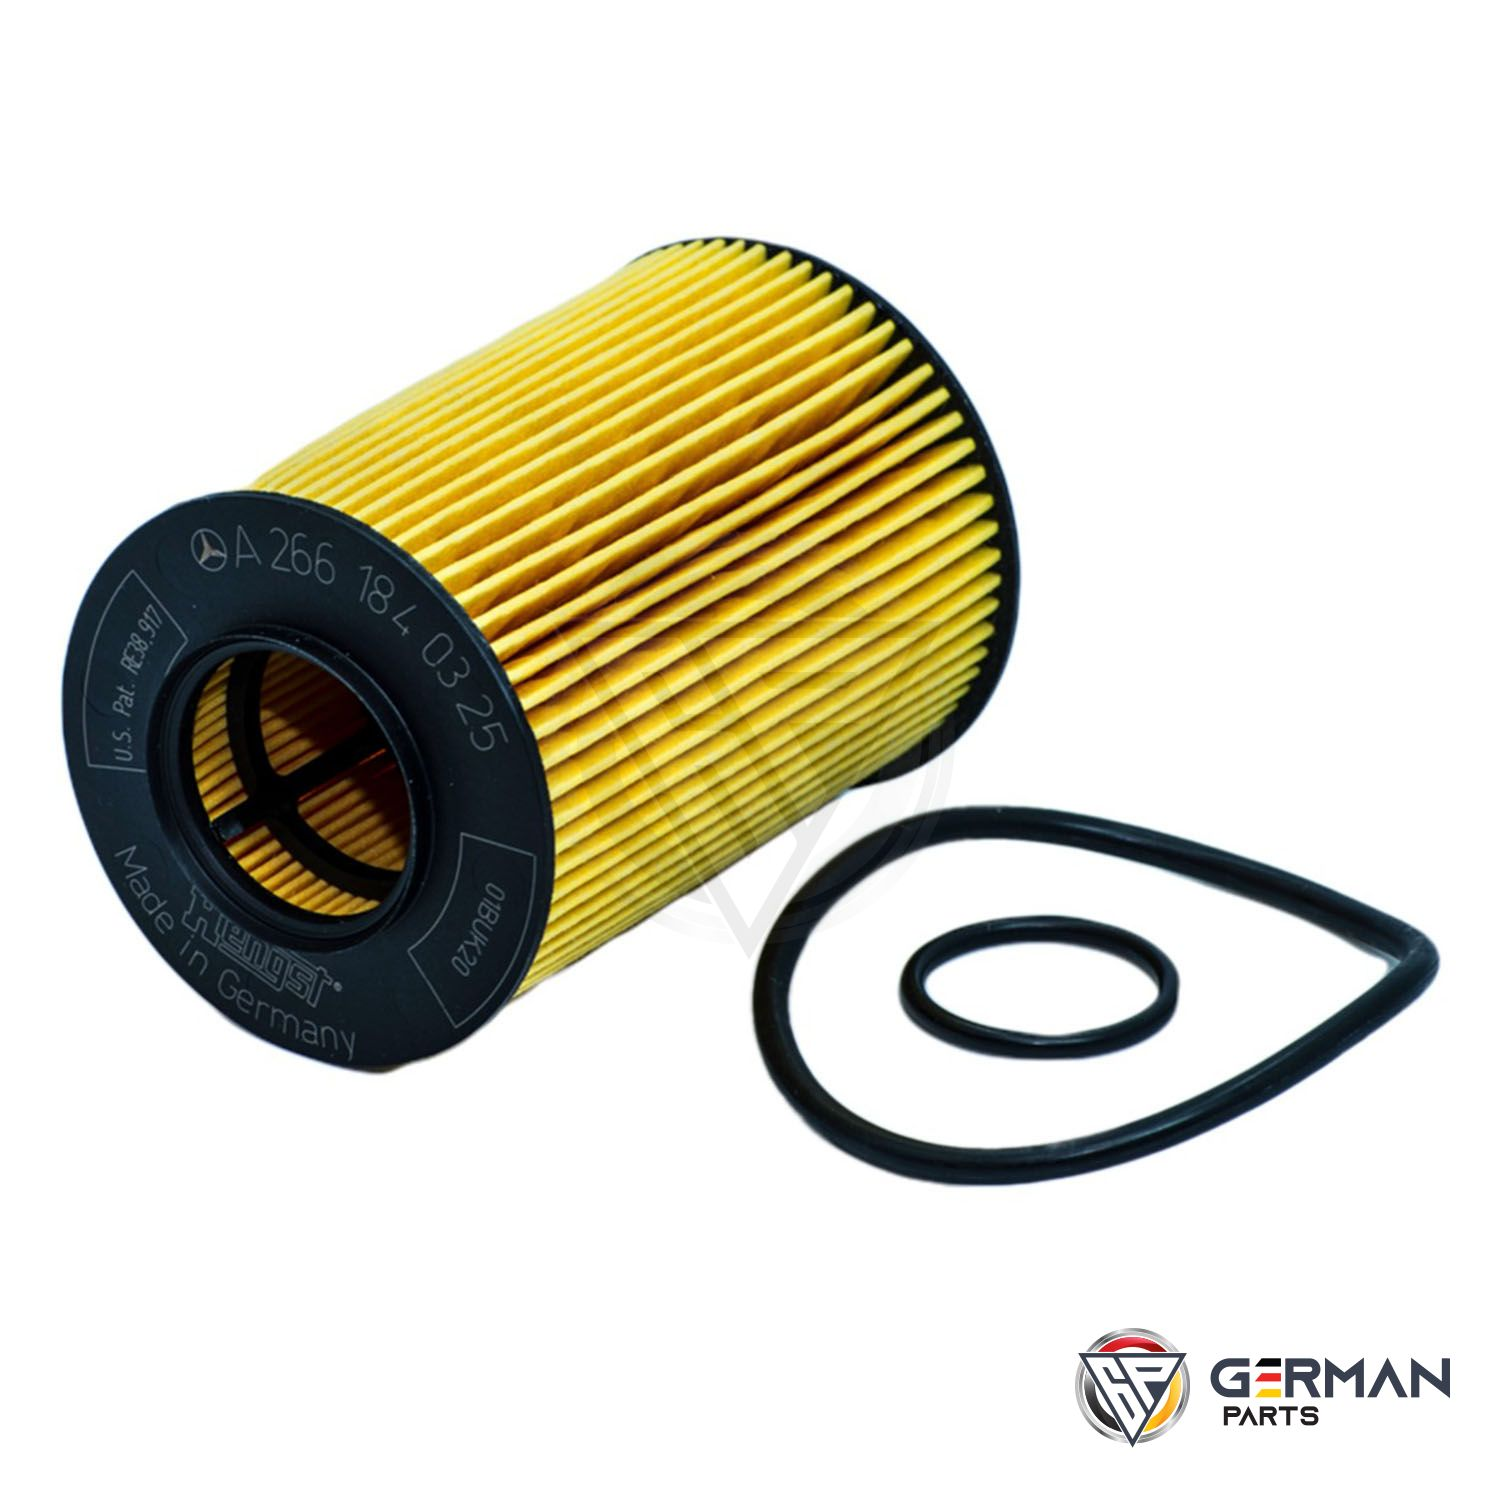 Buy Genuine Mercedes Benz Oil Filter 2661800009 - German Parts